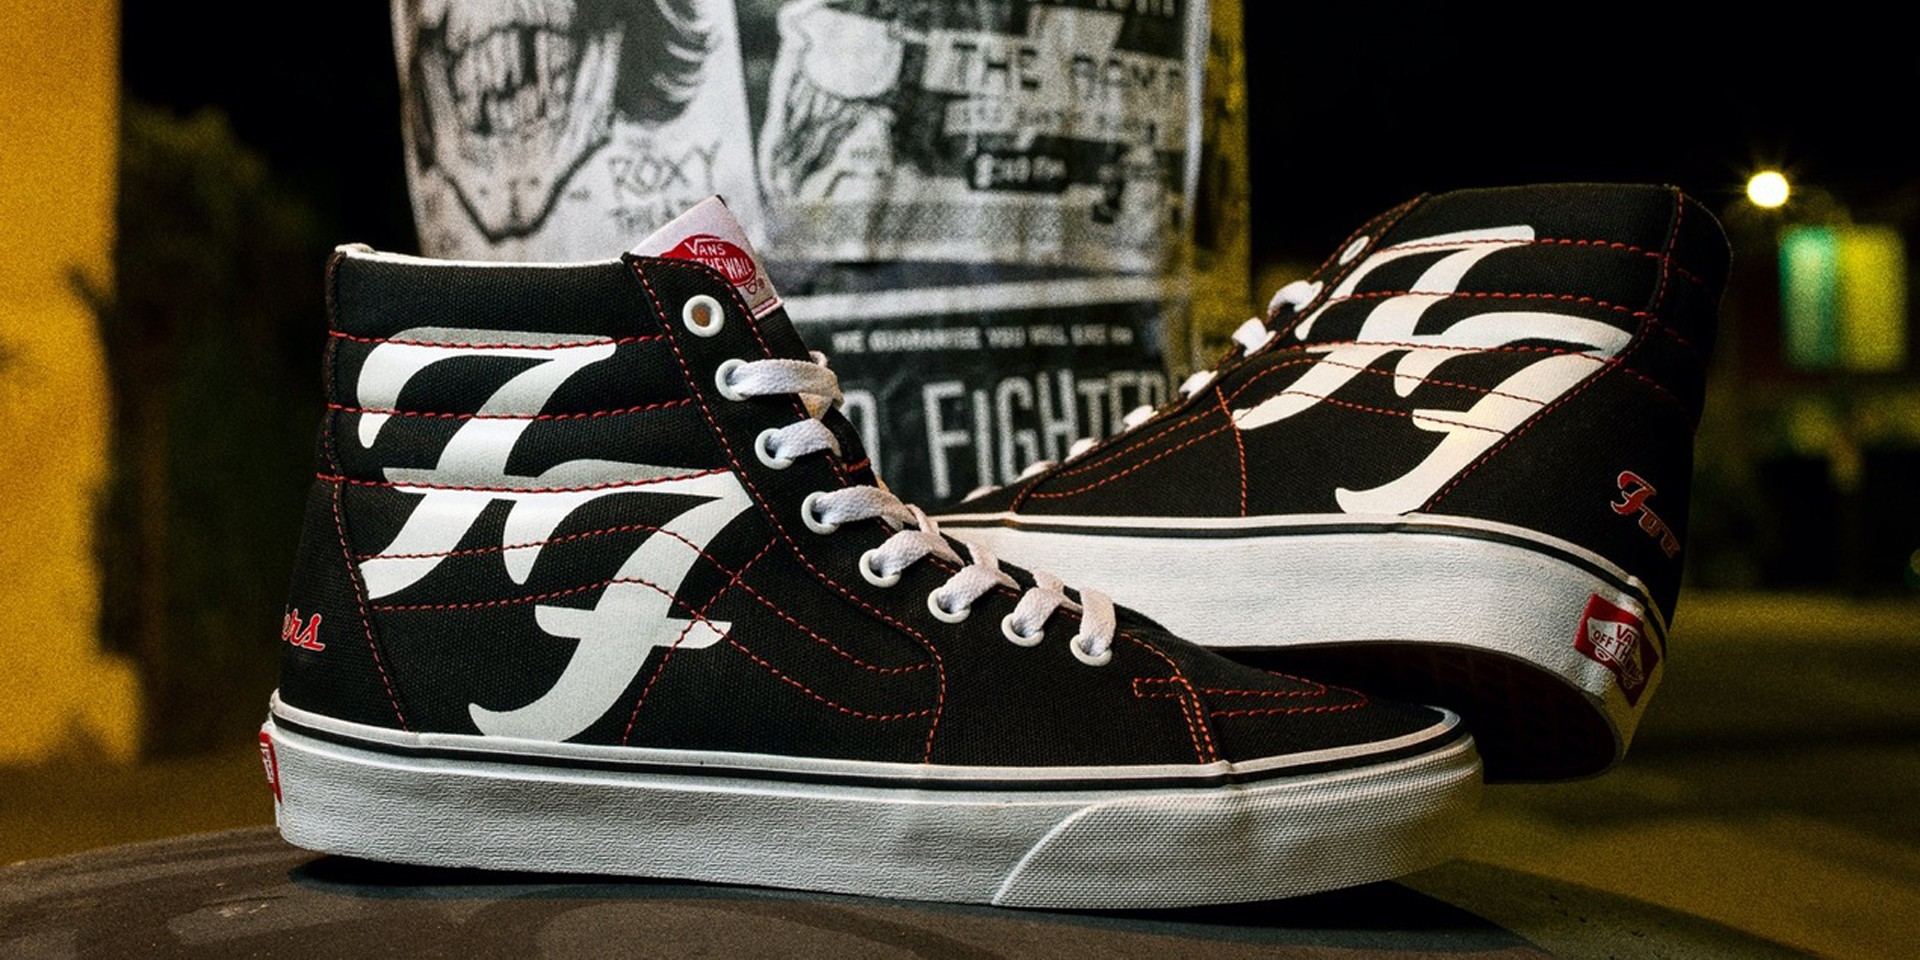 Foo Fighters celebrate 25th anniversary with special edition Vans Sk8-Hi